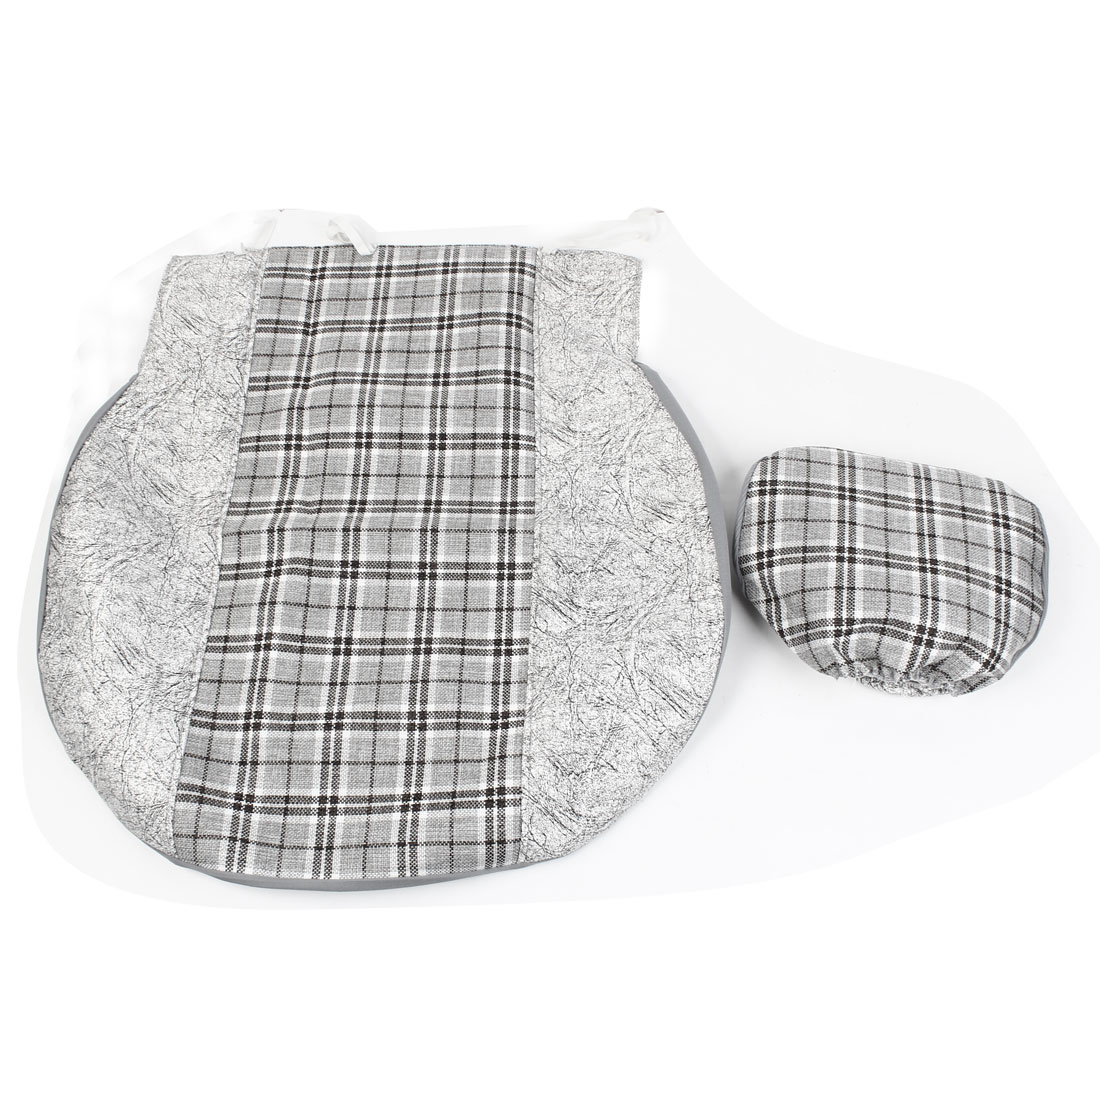 3 in 1 Auto Car Gray Check Pattern Nylon Faux Leather Seat Cover Set